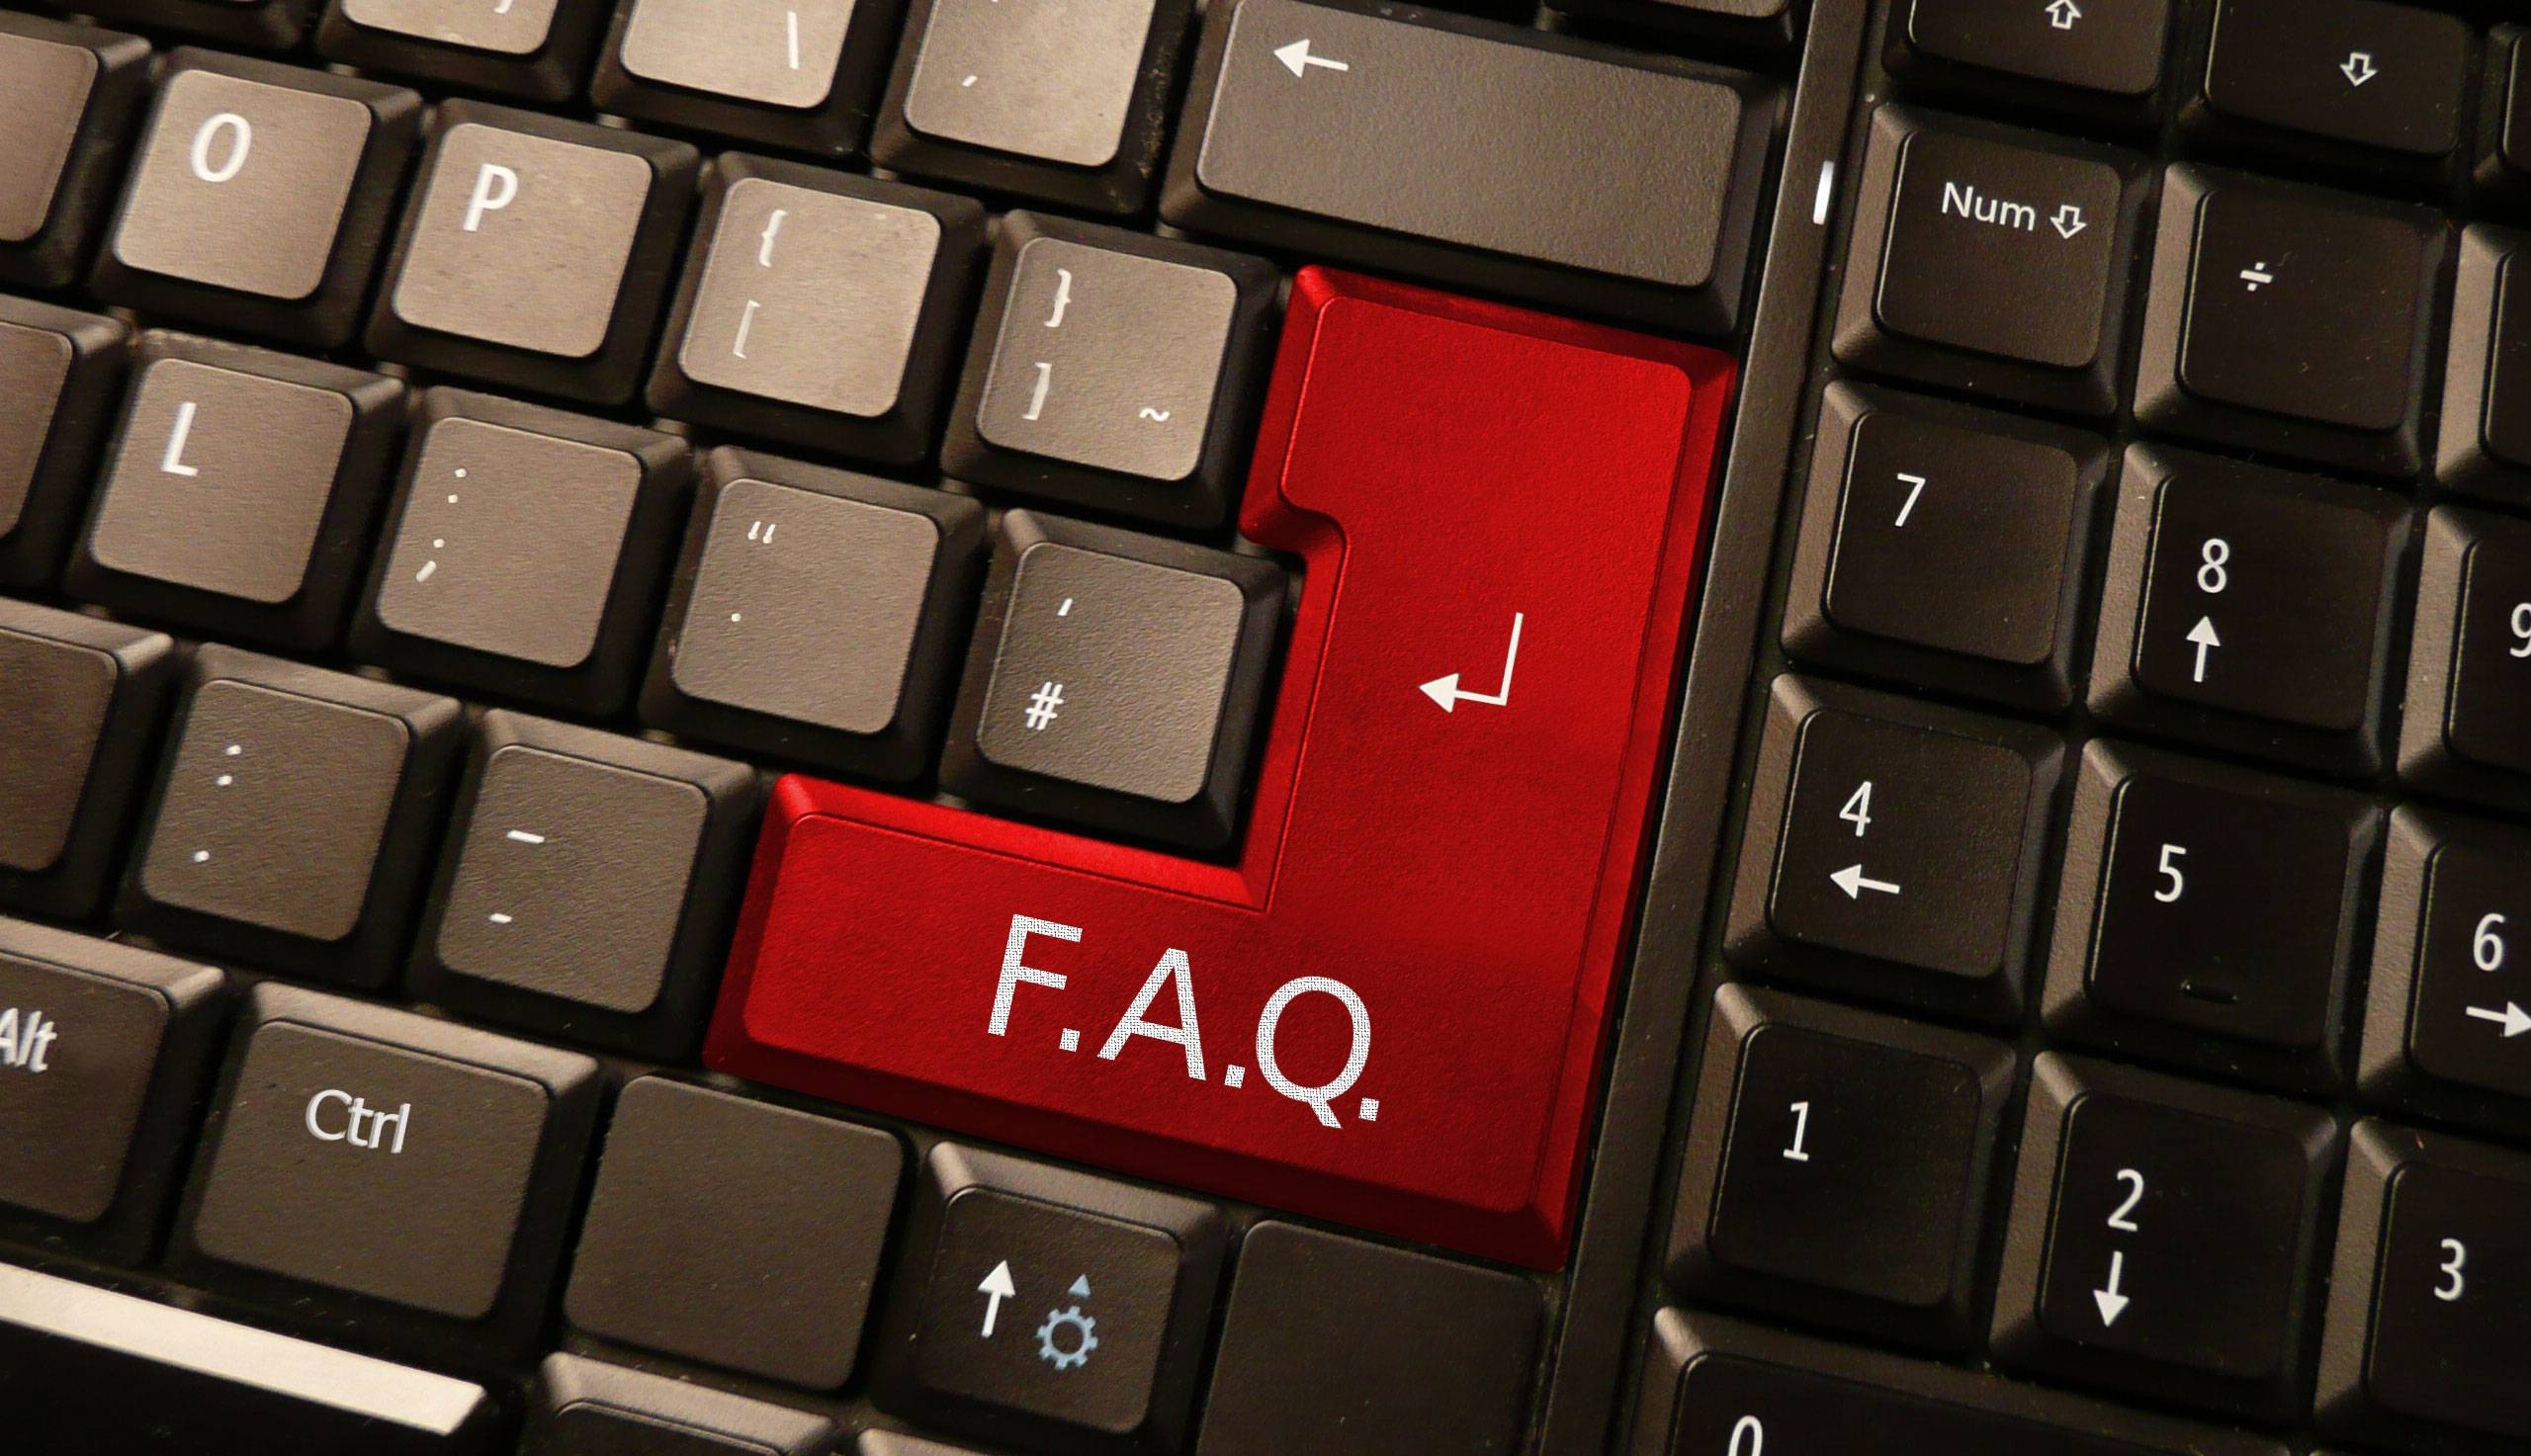 FAQ en WordPress - FAQ en un teclado